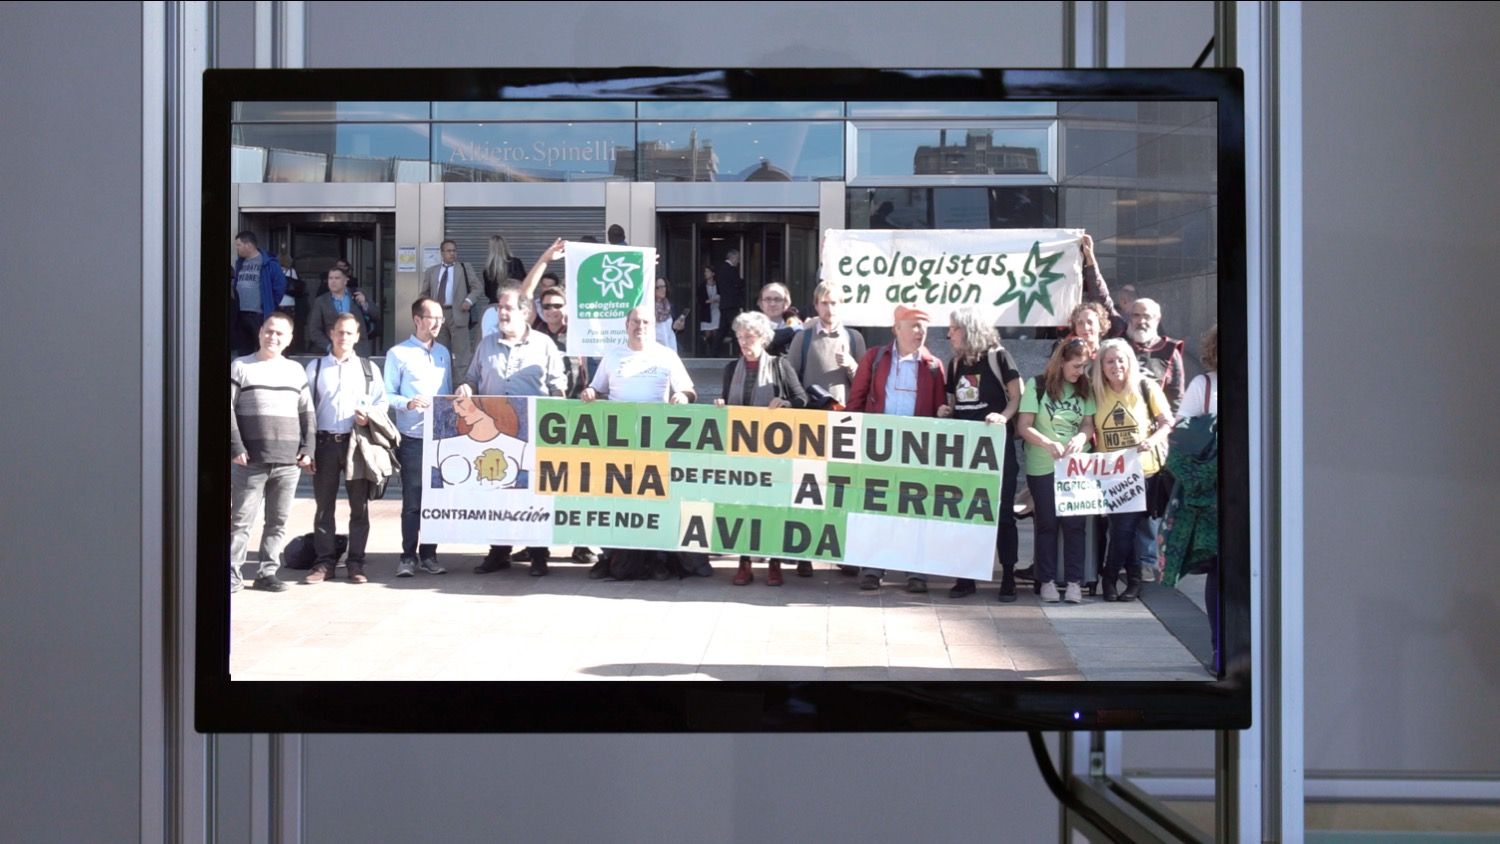 Europe, the New Extractivist Frontier, 2018, 00:43 min. Video produced for Ecologistas en Acción (Spain)